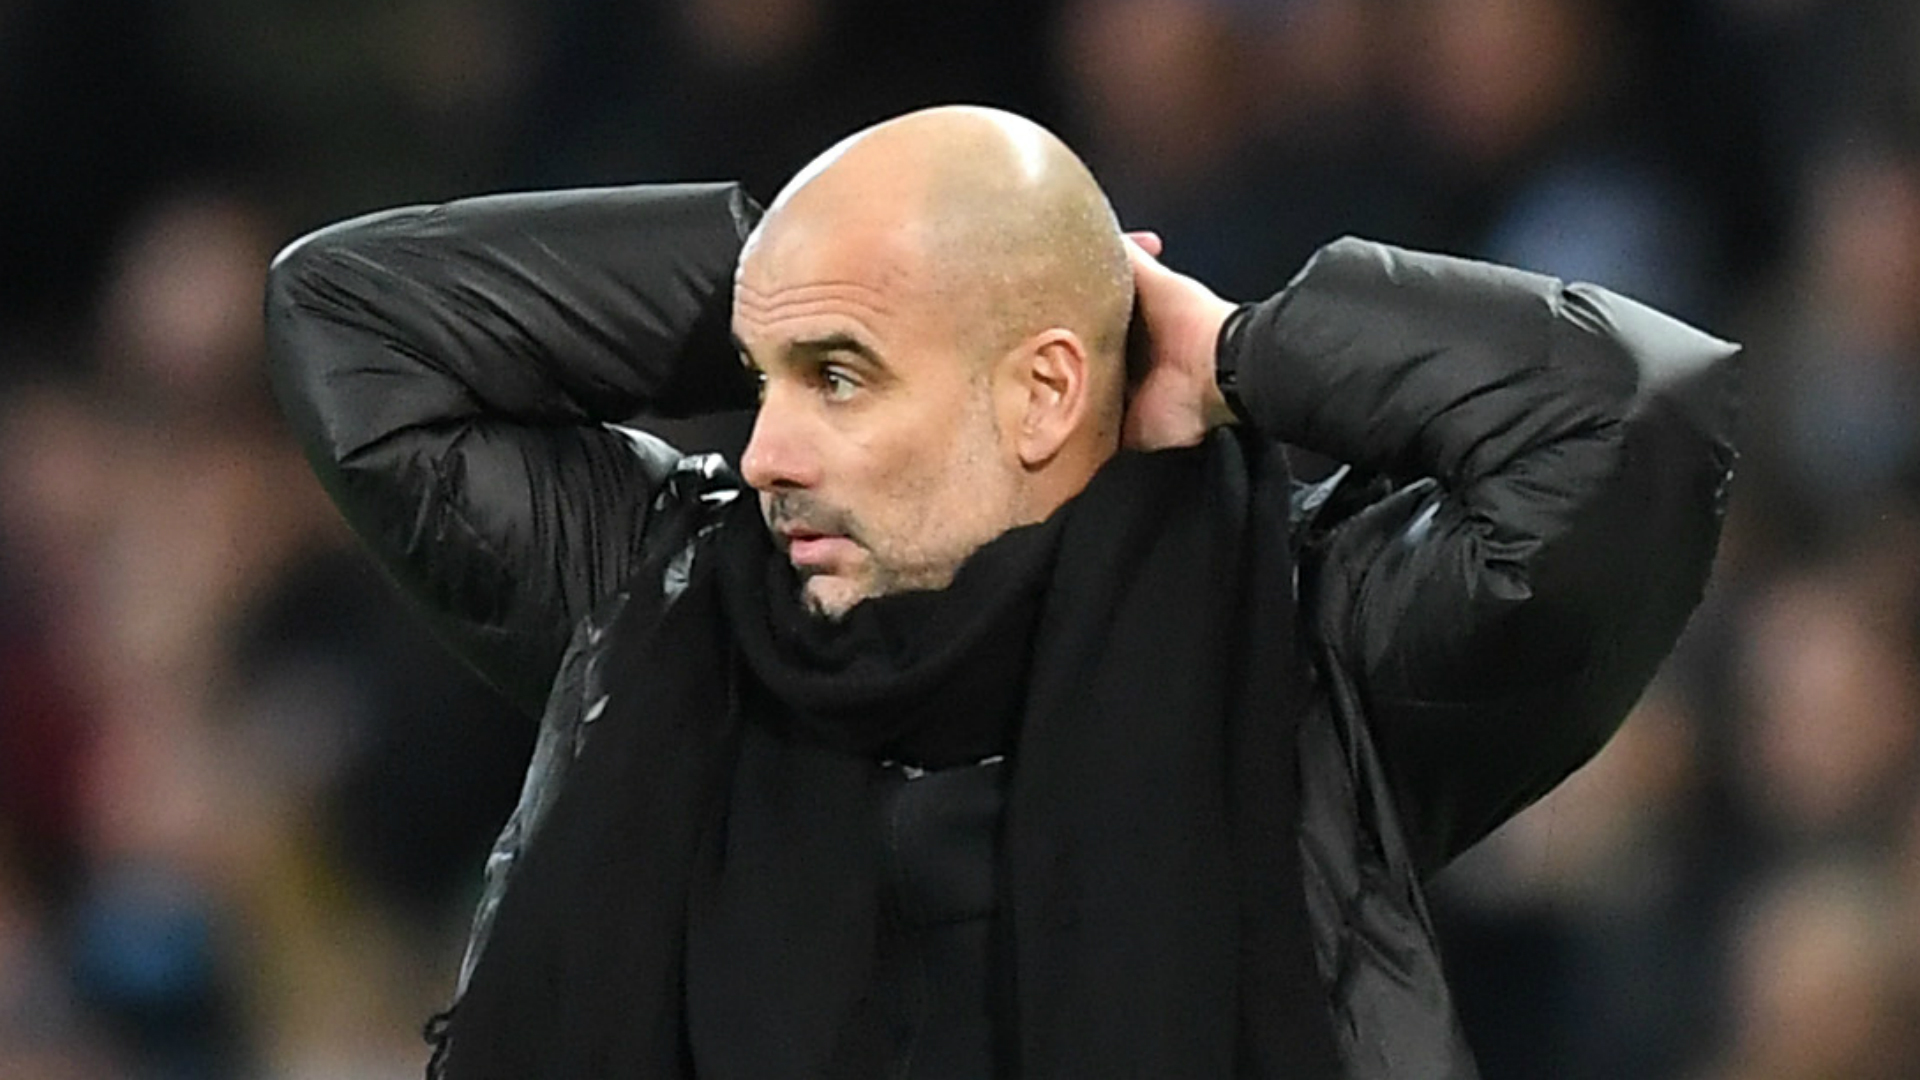 Saturday's loss at home to Manchester United left Manchester City manager Pep Guardiola facing up to some harsh truths.